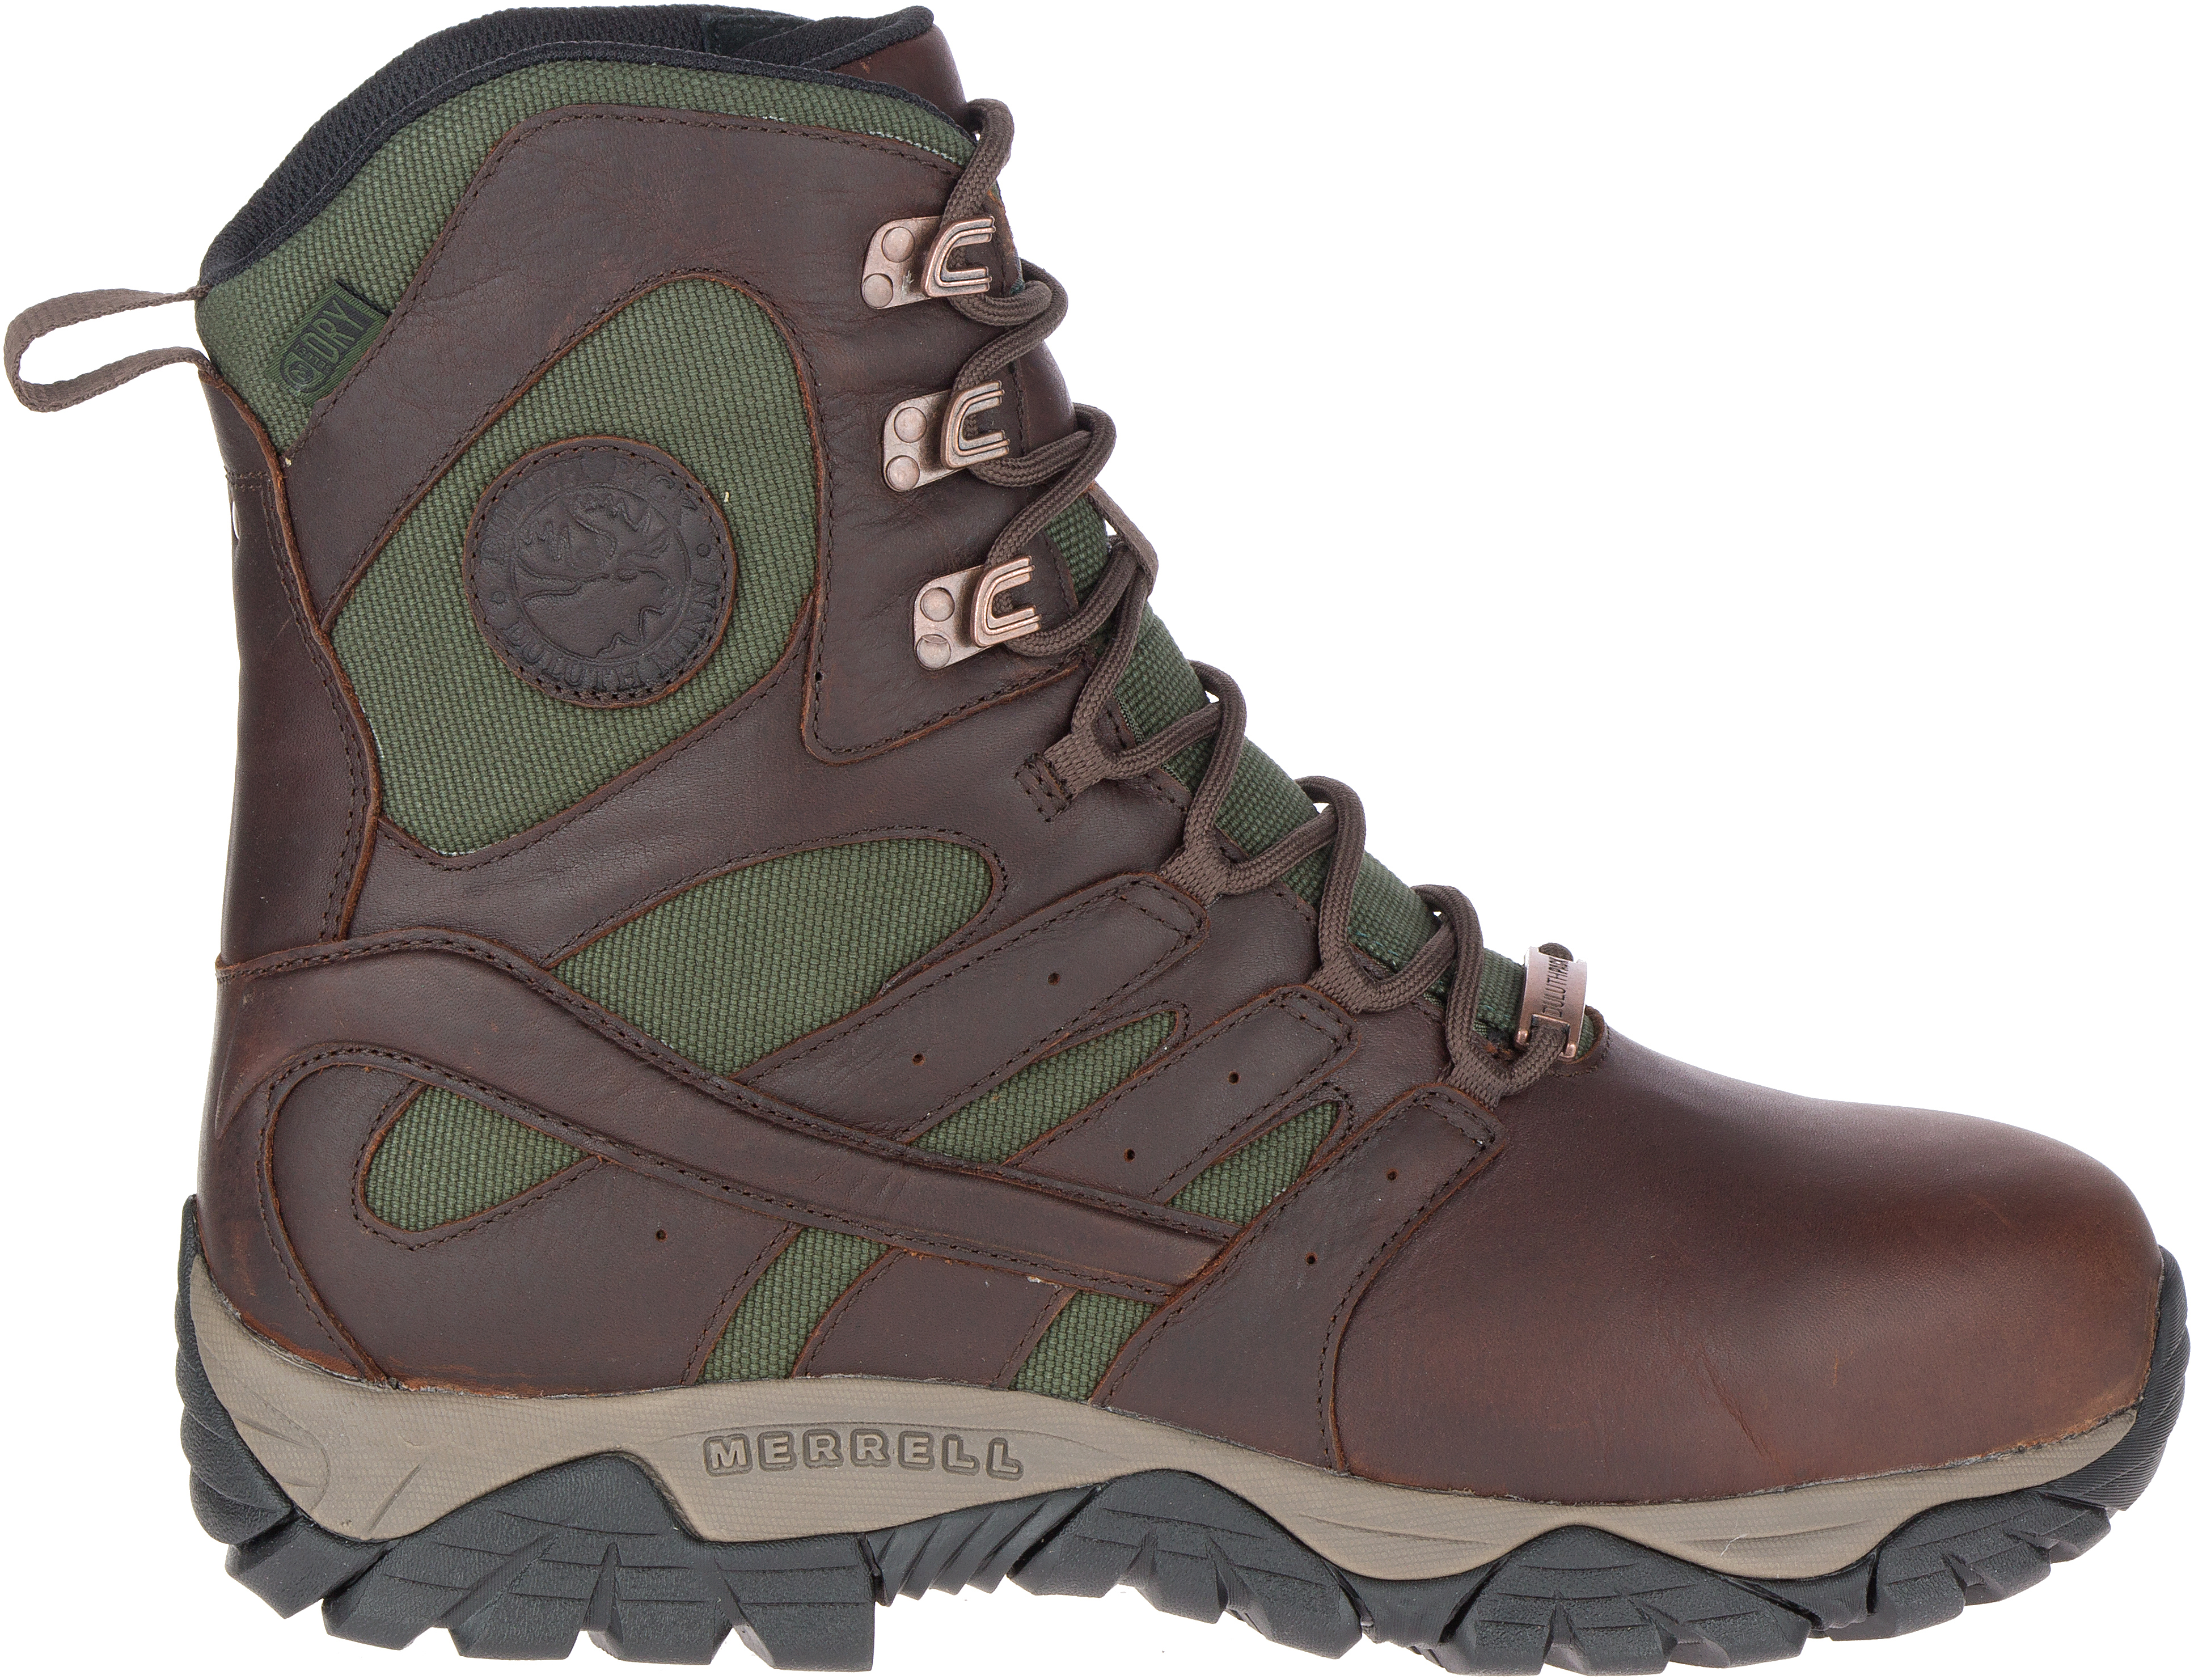 Merrell X Duluth Pack, collaboration, hiker boots